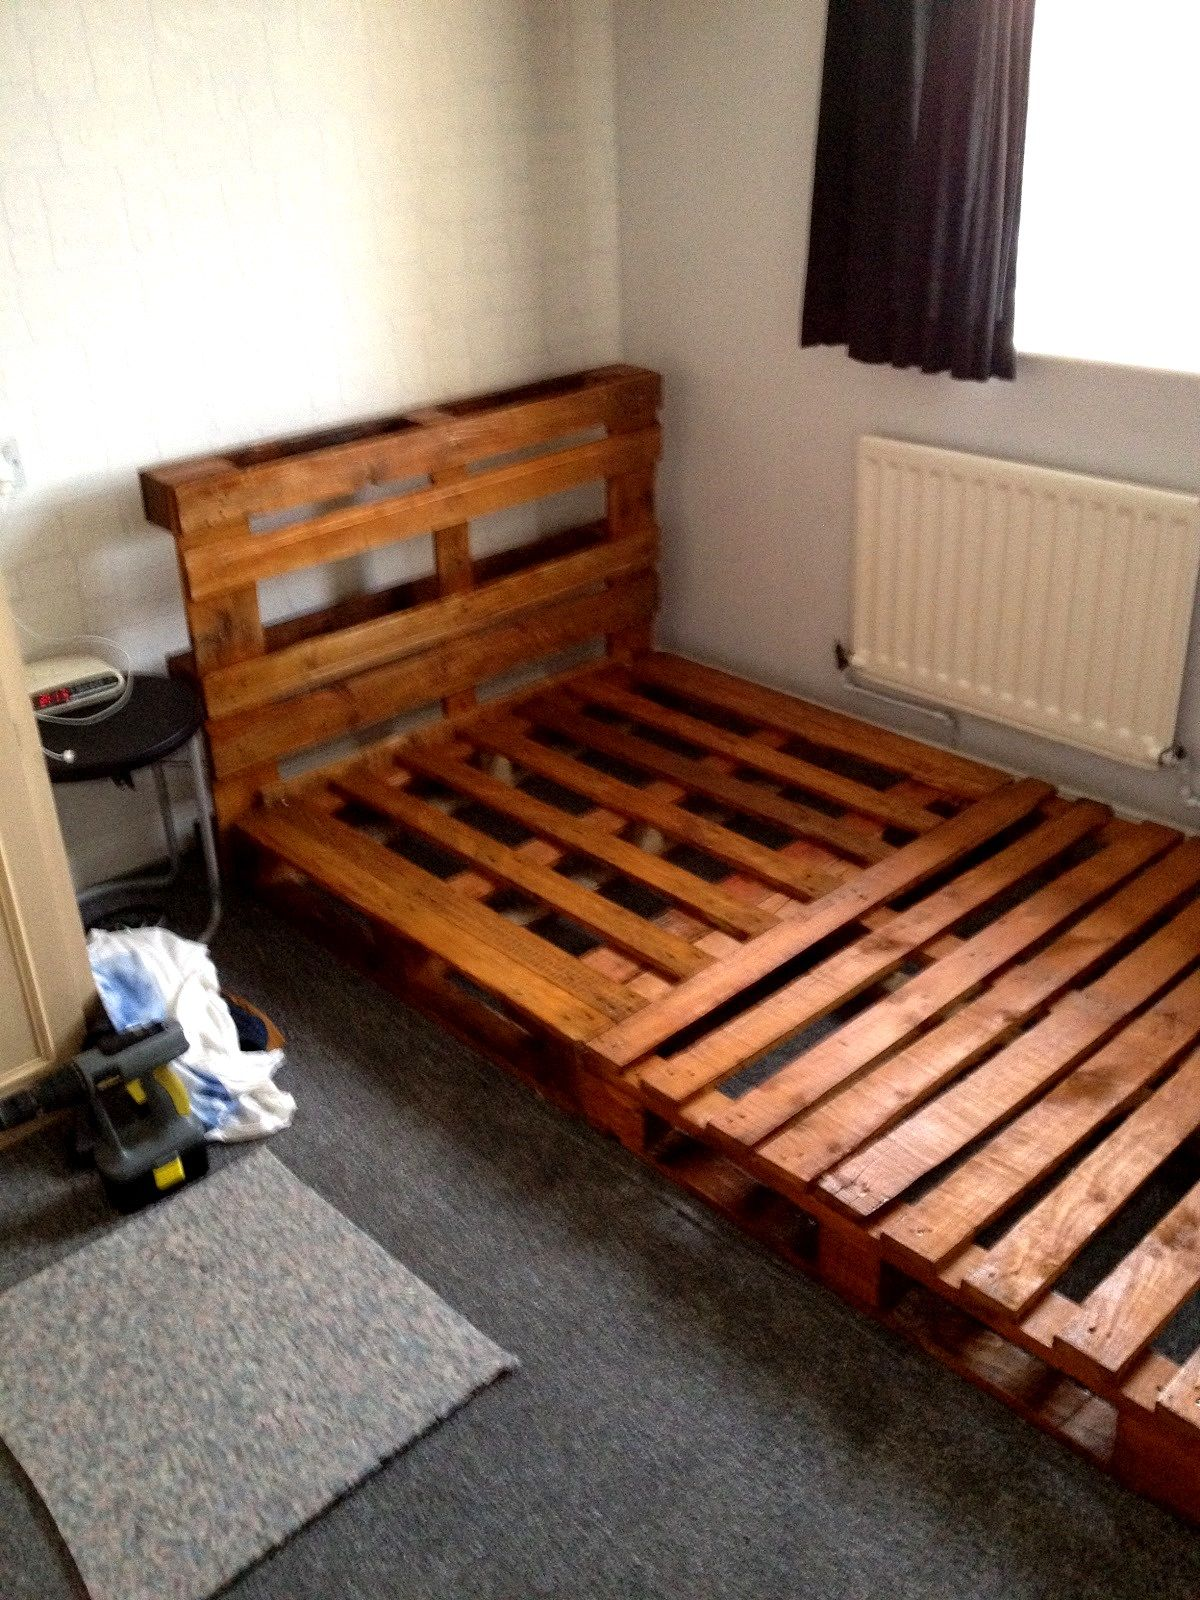 Diy Beds Made Out Of Wooden Pallets Pallet Bed Frame Diy Diy Pallet Bed Pallet Bed Frame